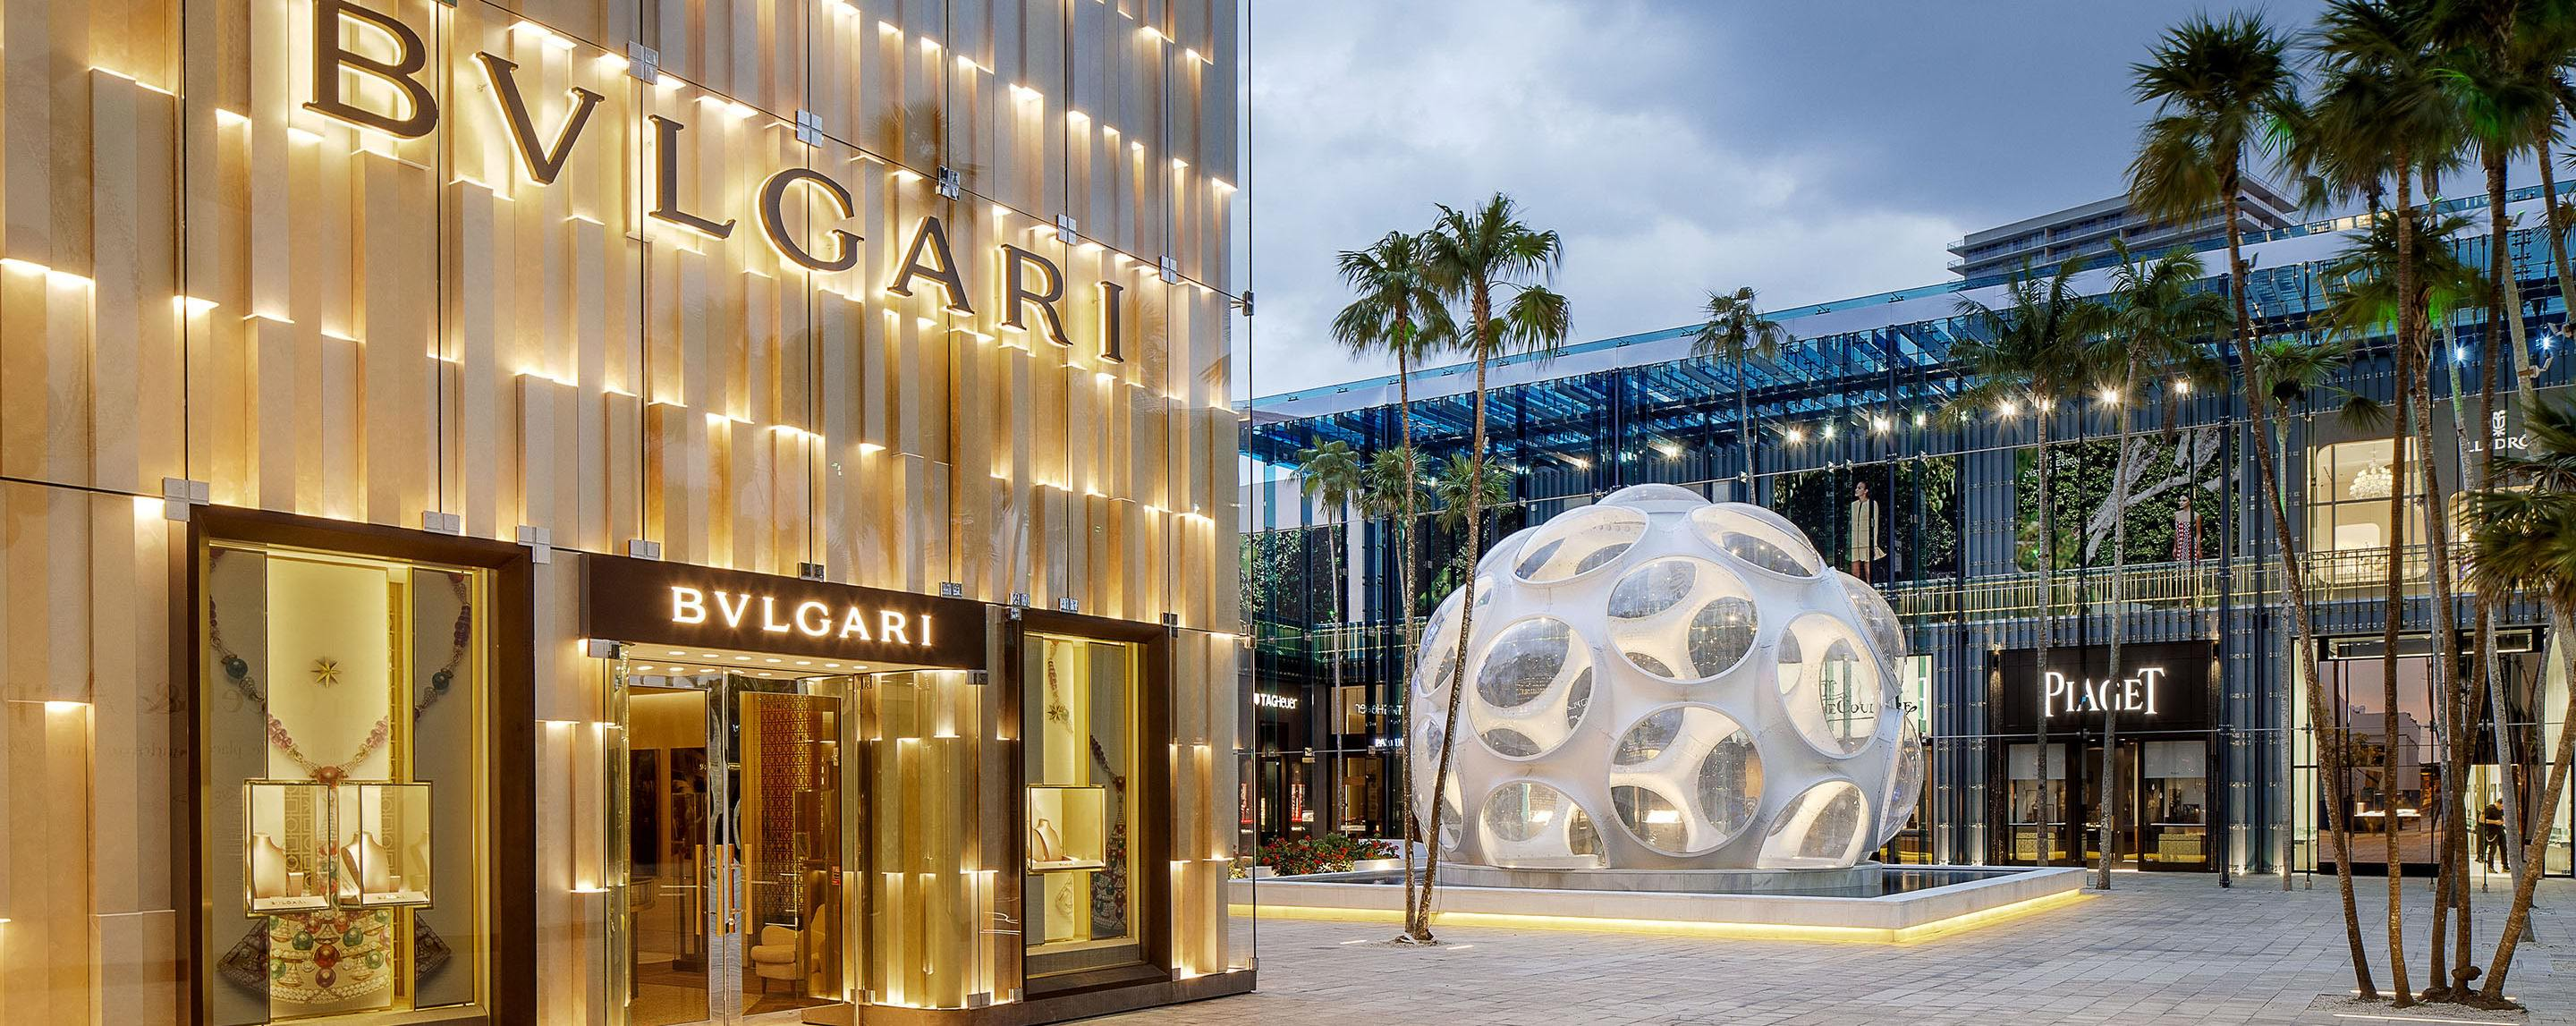 In a common area outside of the Miami Design District, you see lit up store fronts, a large artistic fountain, and numerous palm trees.